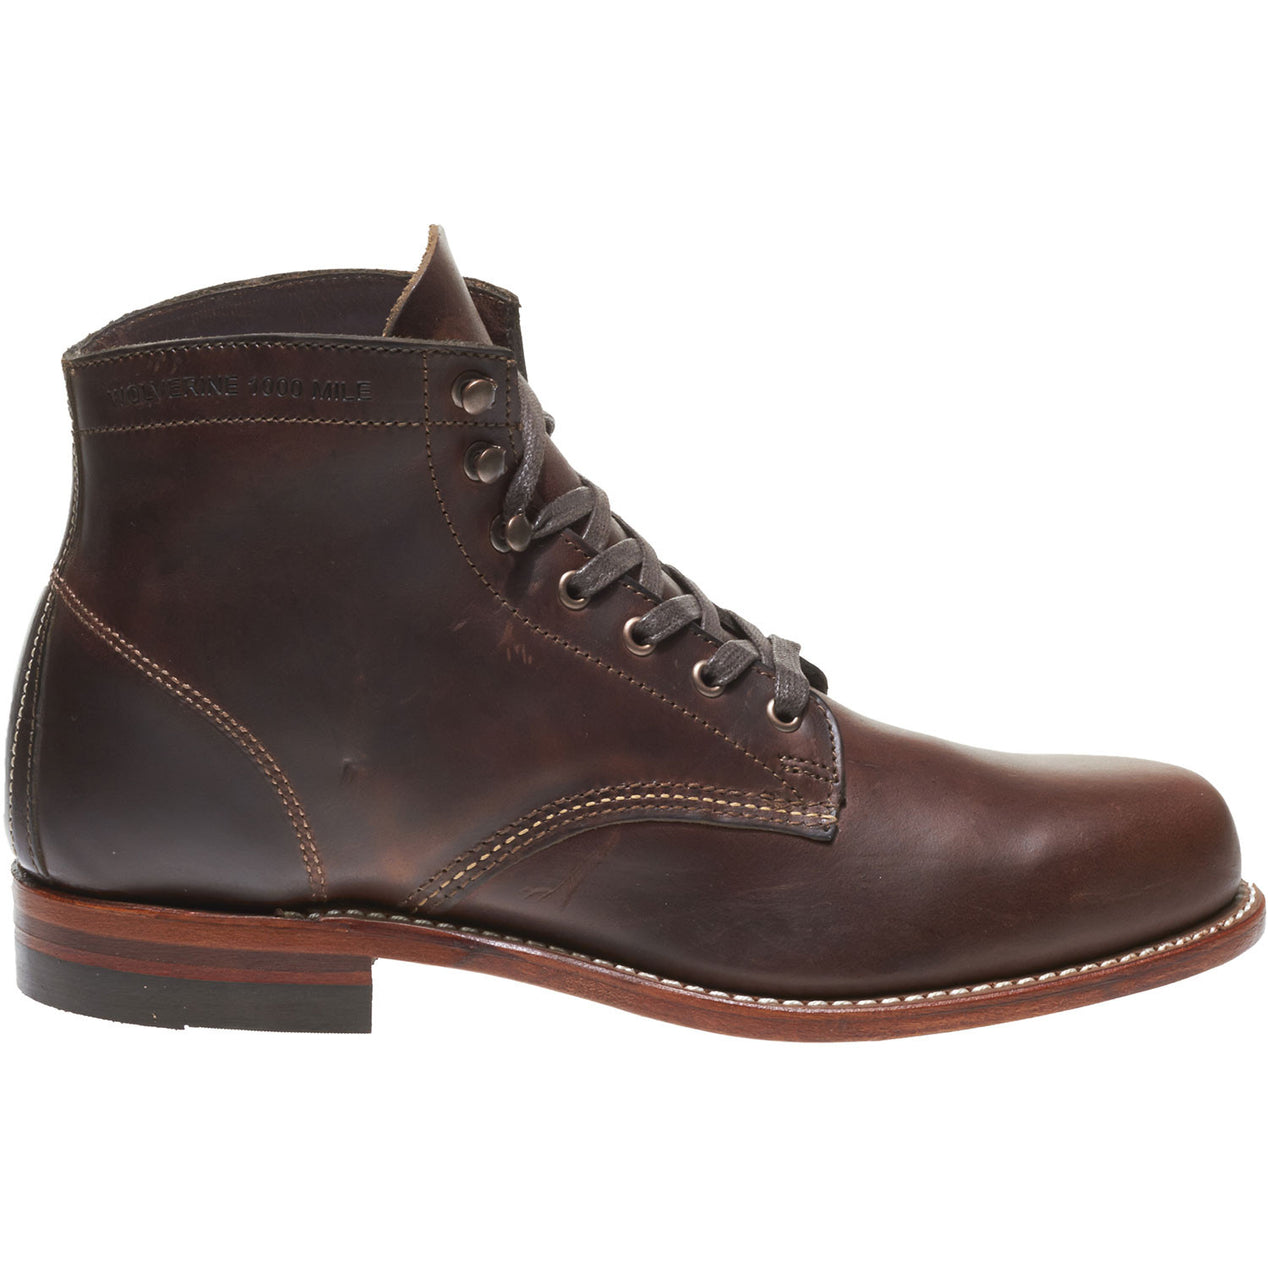 ee80500f04e 1000 Mile Boots - Men's